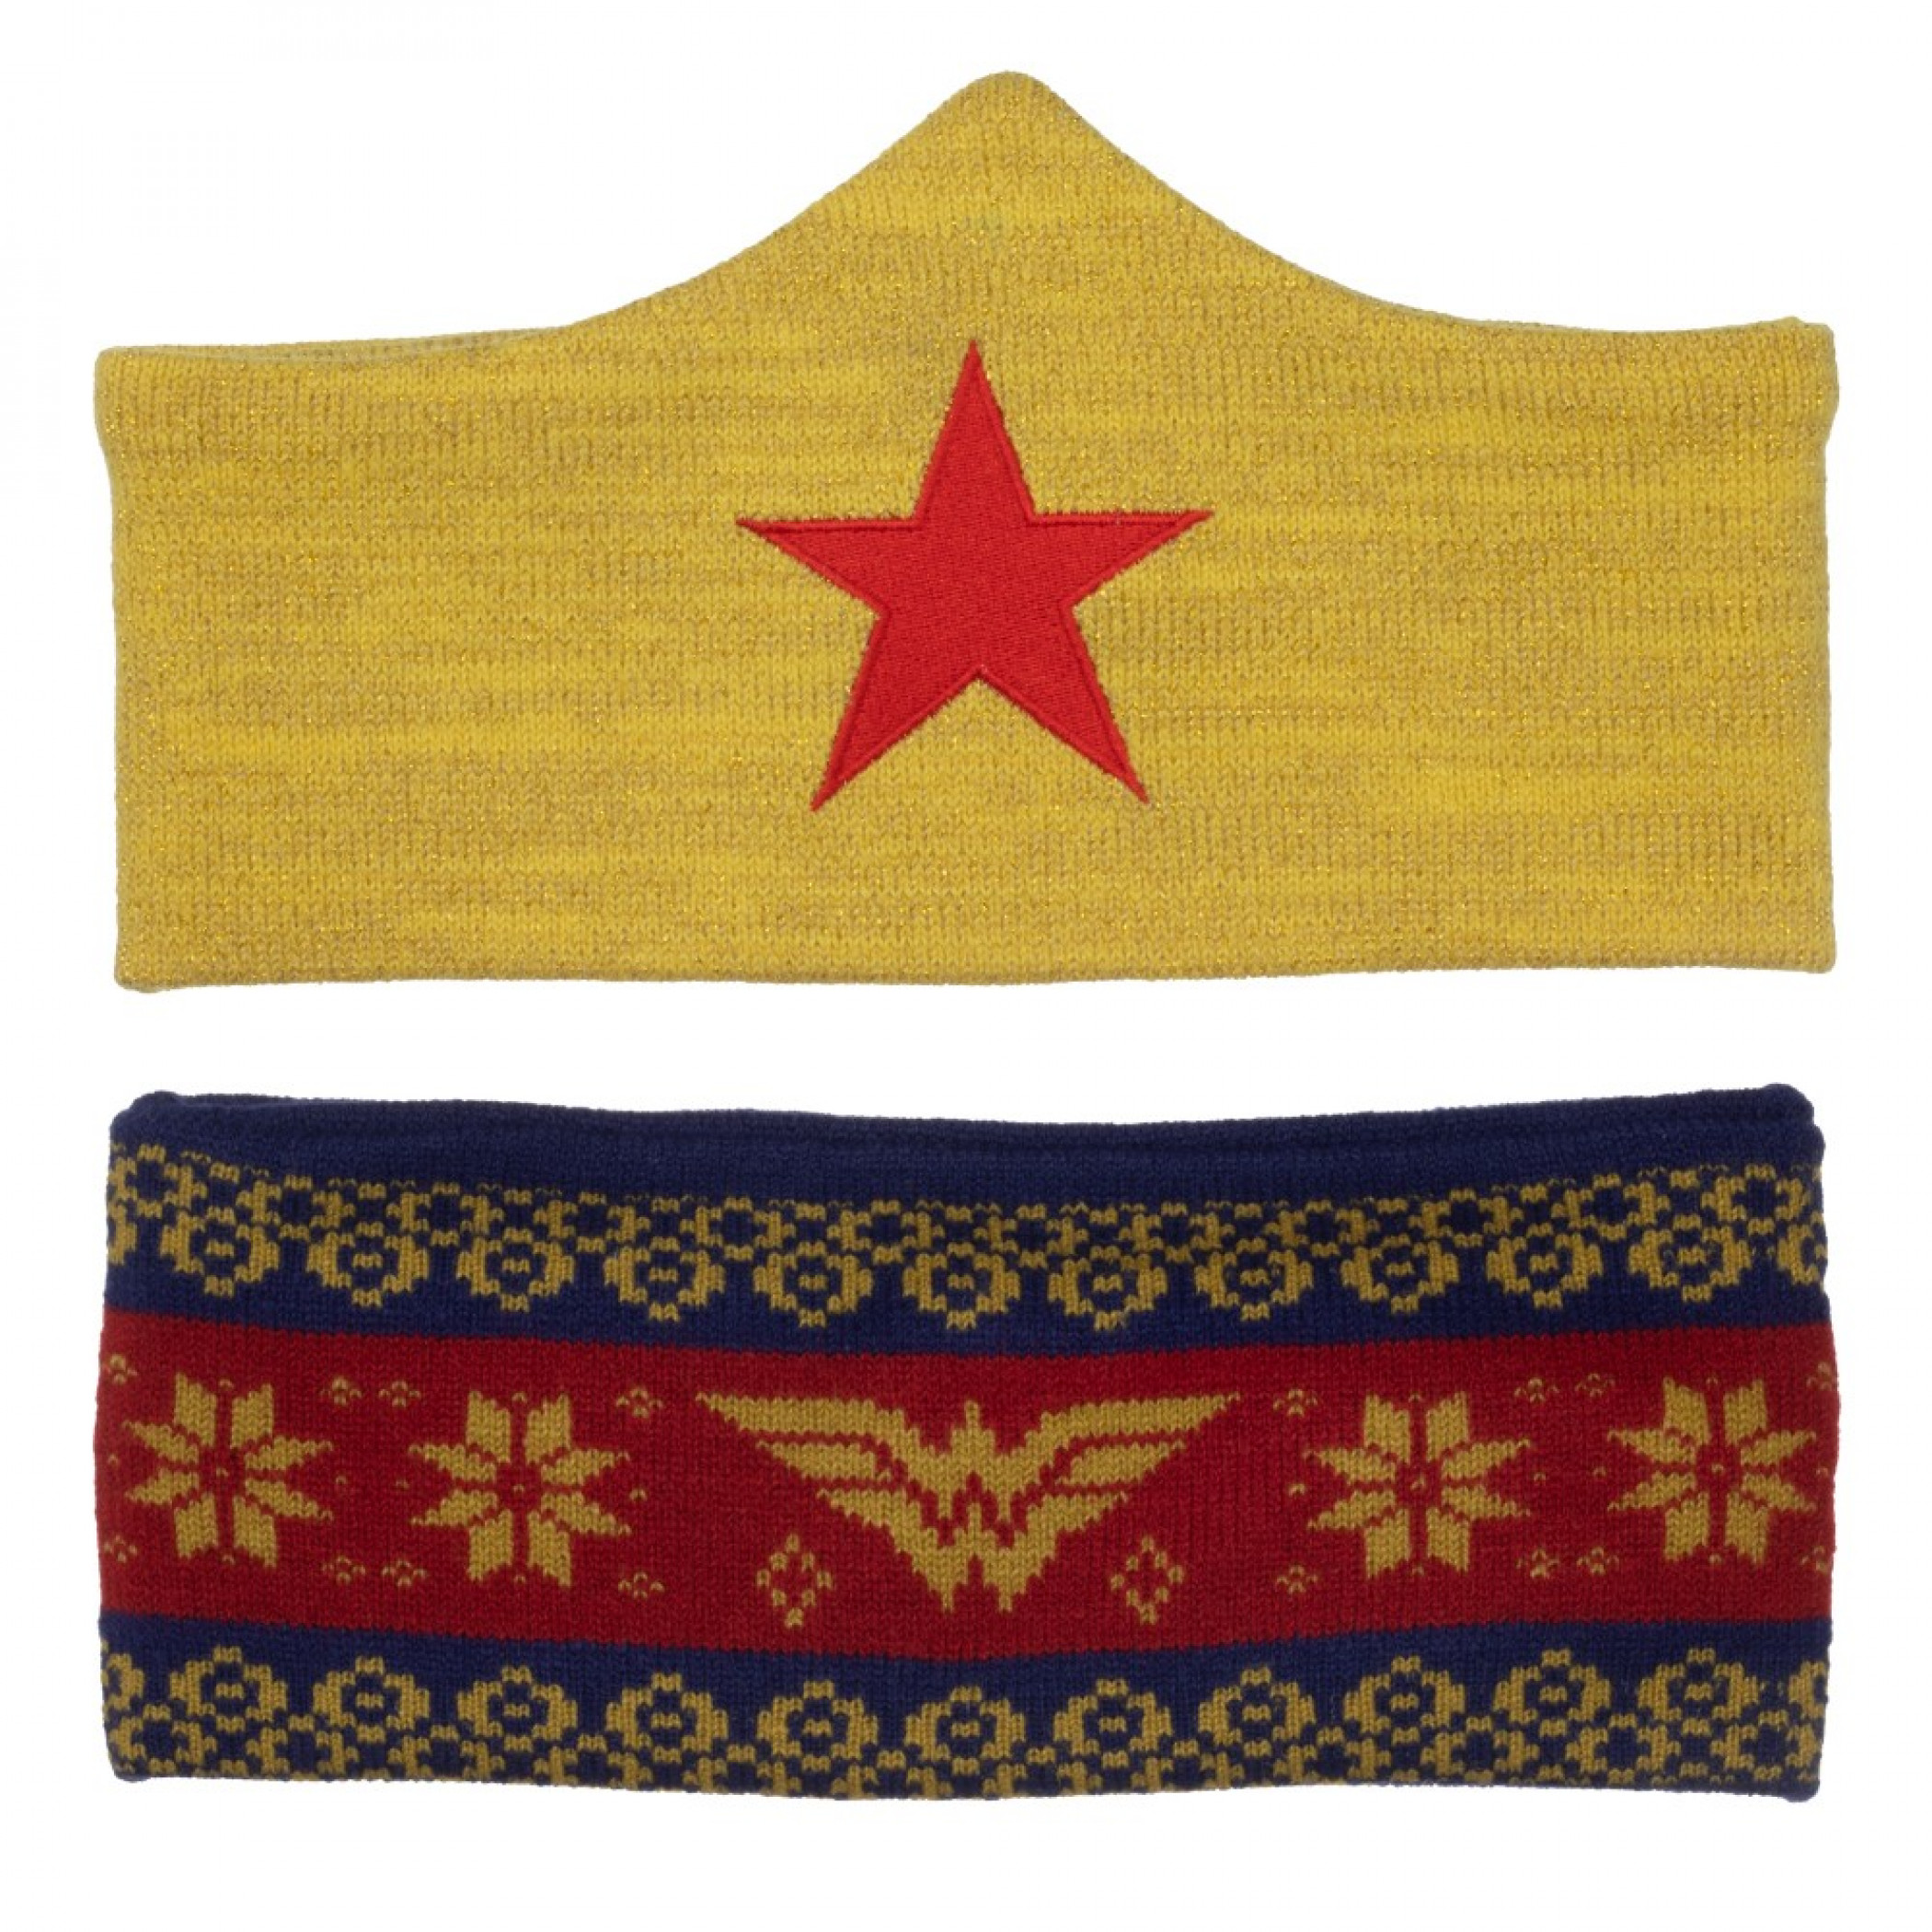 Wonder Woman Headbands Set of 2